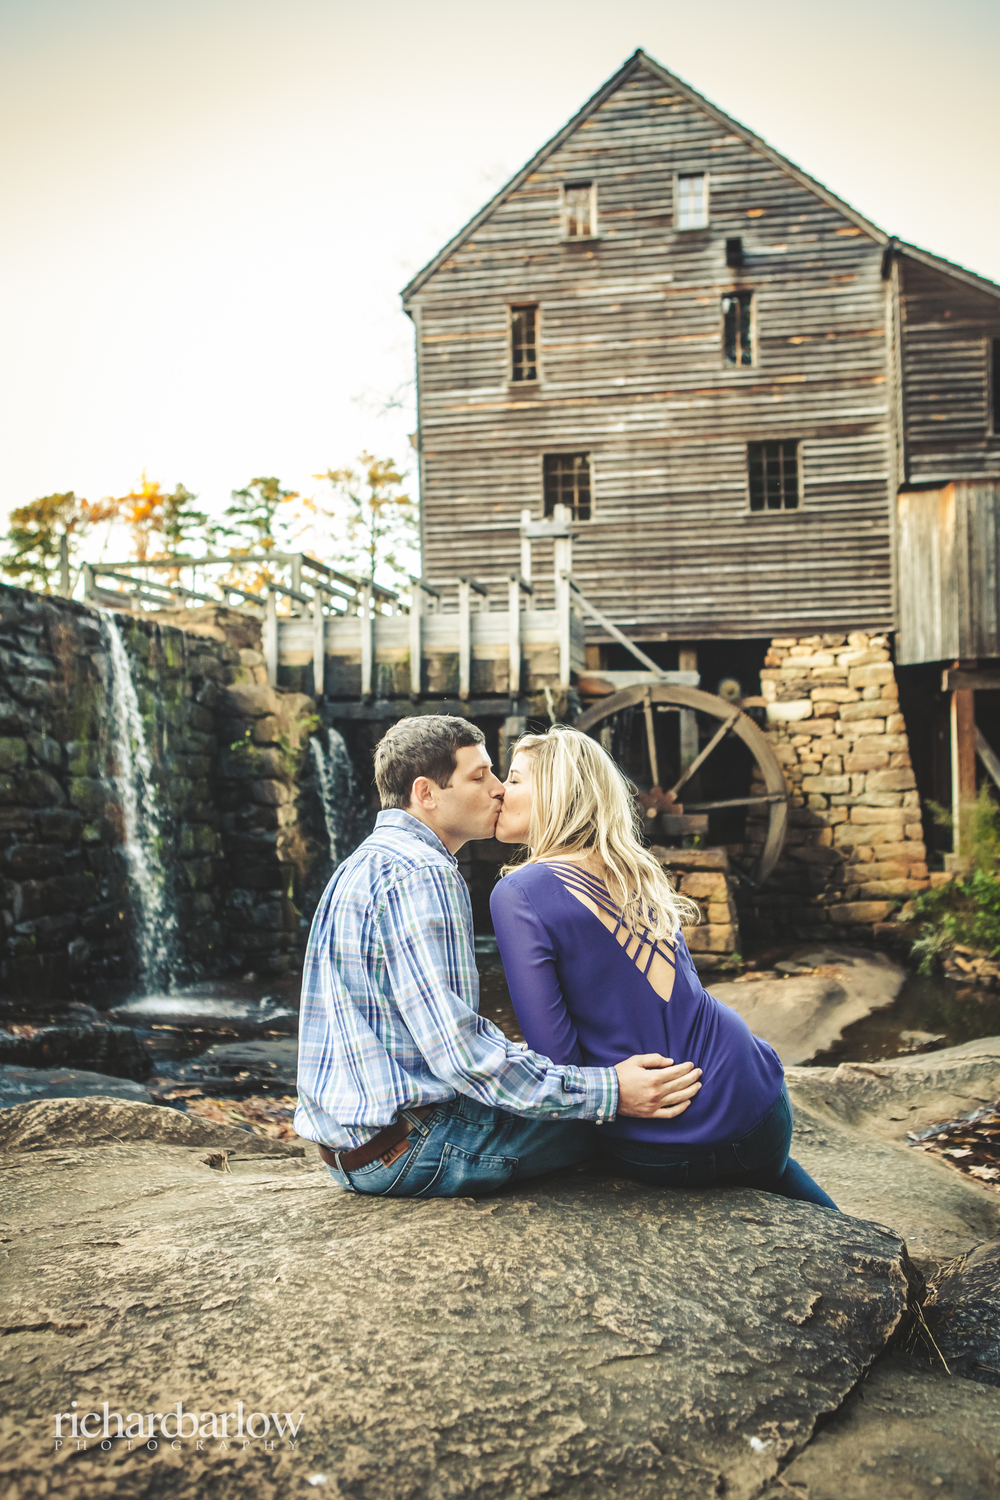 richard barlow photography - Garrett and Heather Engagement Session Raleigh-17.jpg